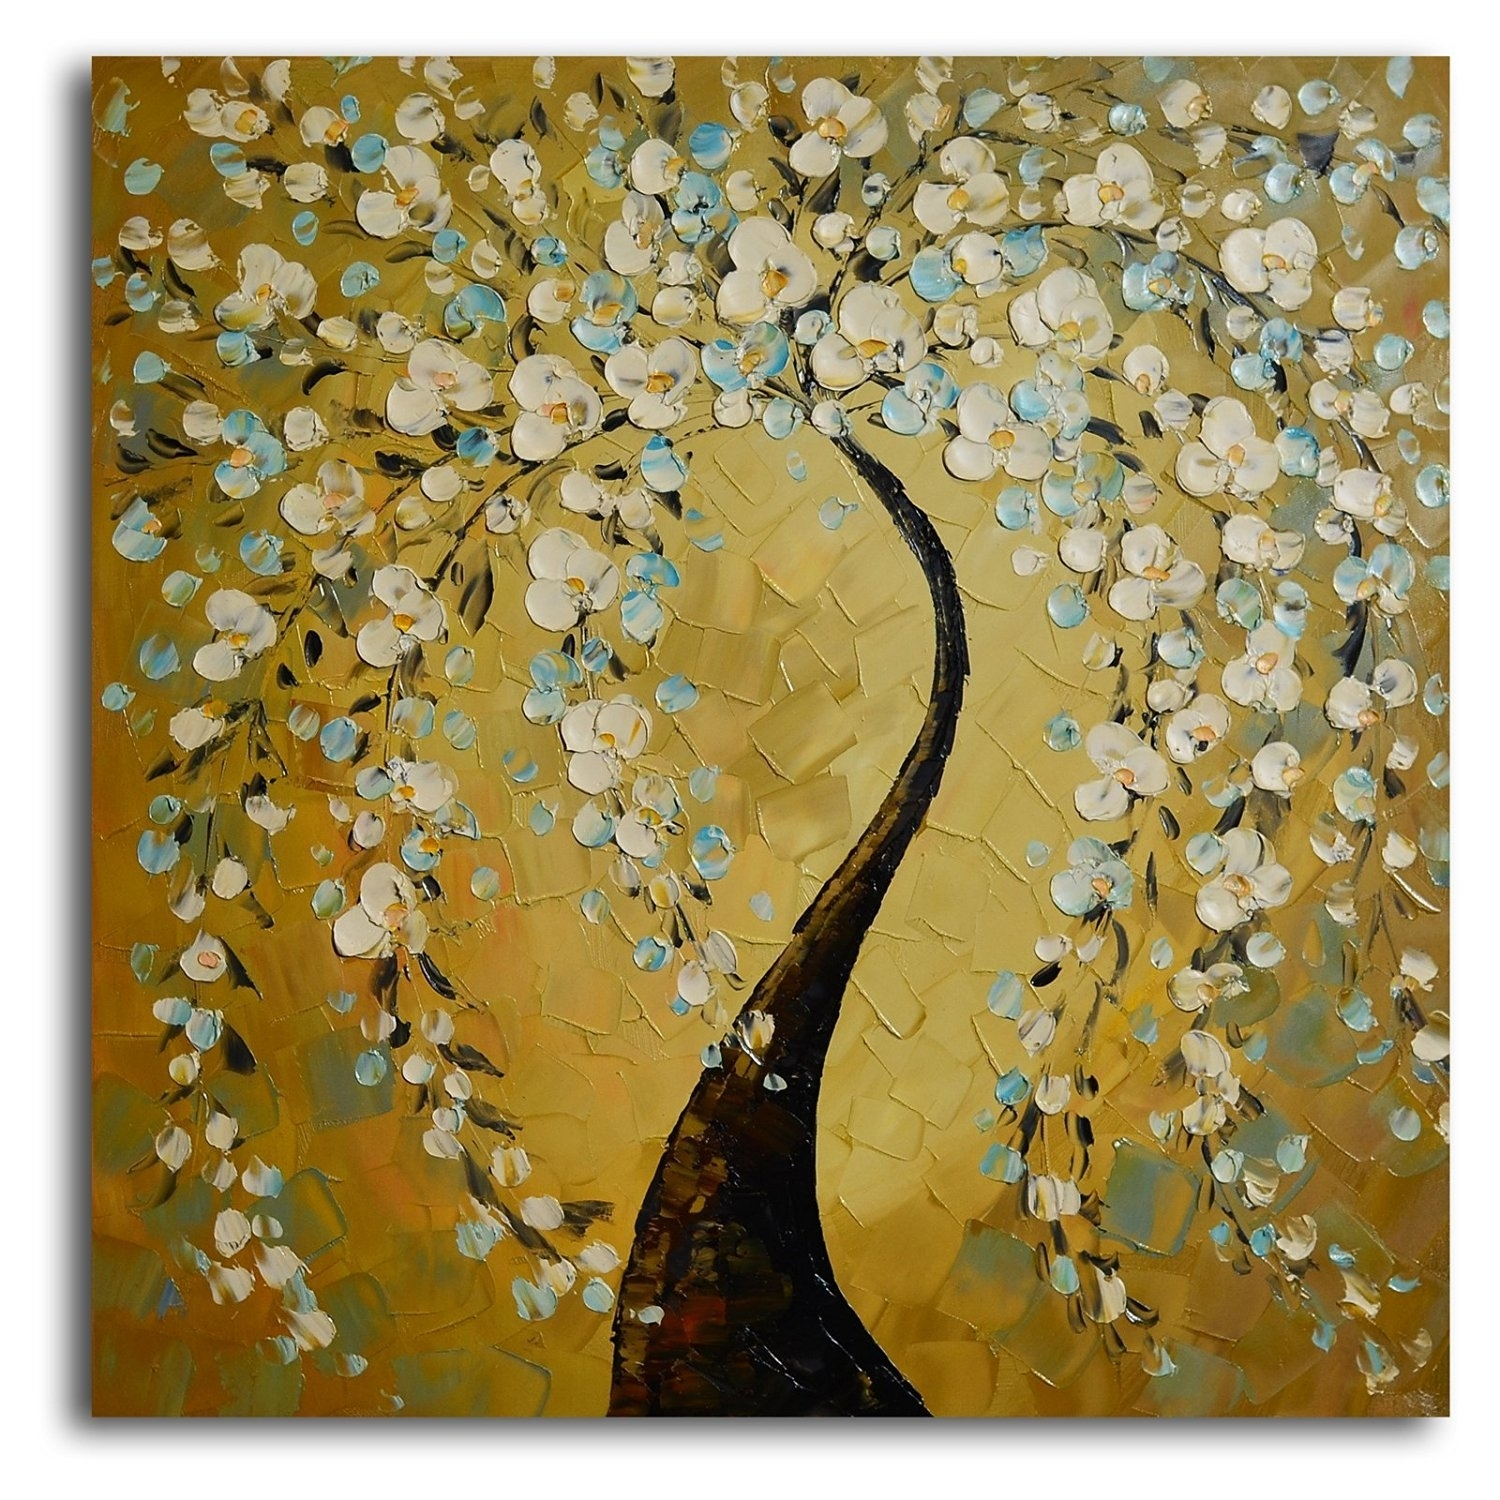 Buy Tjie Art Hand Painted Mordern Oil Paintings,shimmering Bow Oil within Wall Art Paintings (Image 12 of 20)